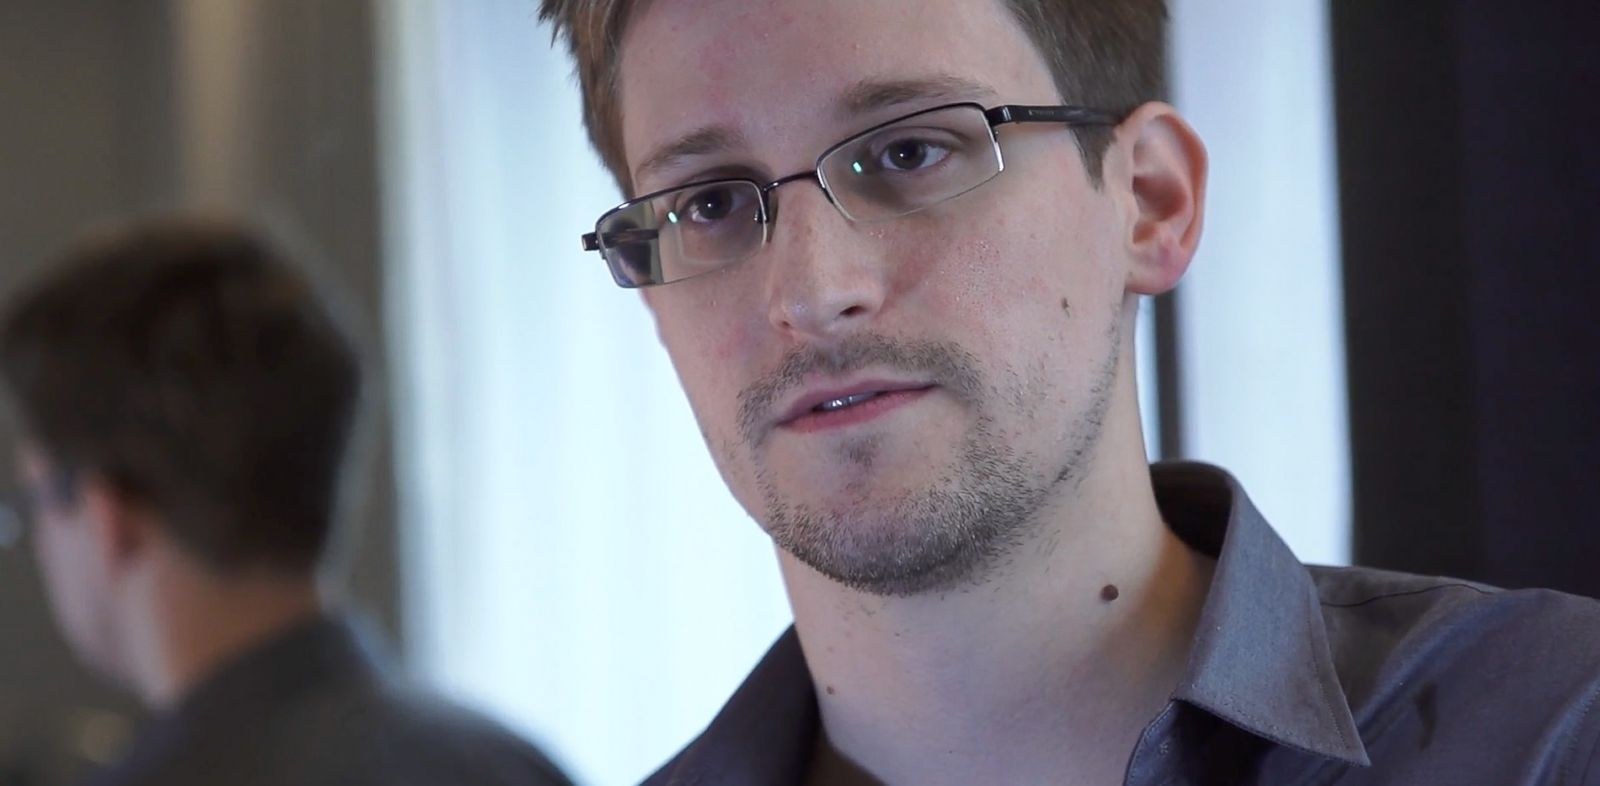 PHOTO: In this handout photo provided by The Guardian, Edward Snowden speaks during an interview in Hong Kong.